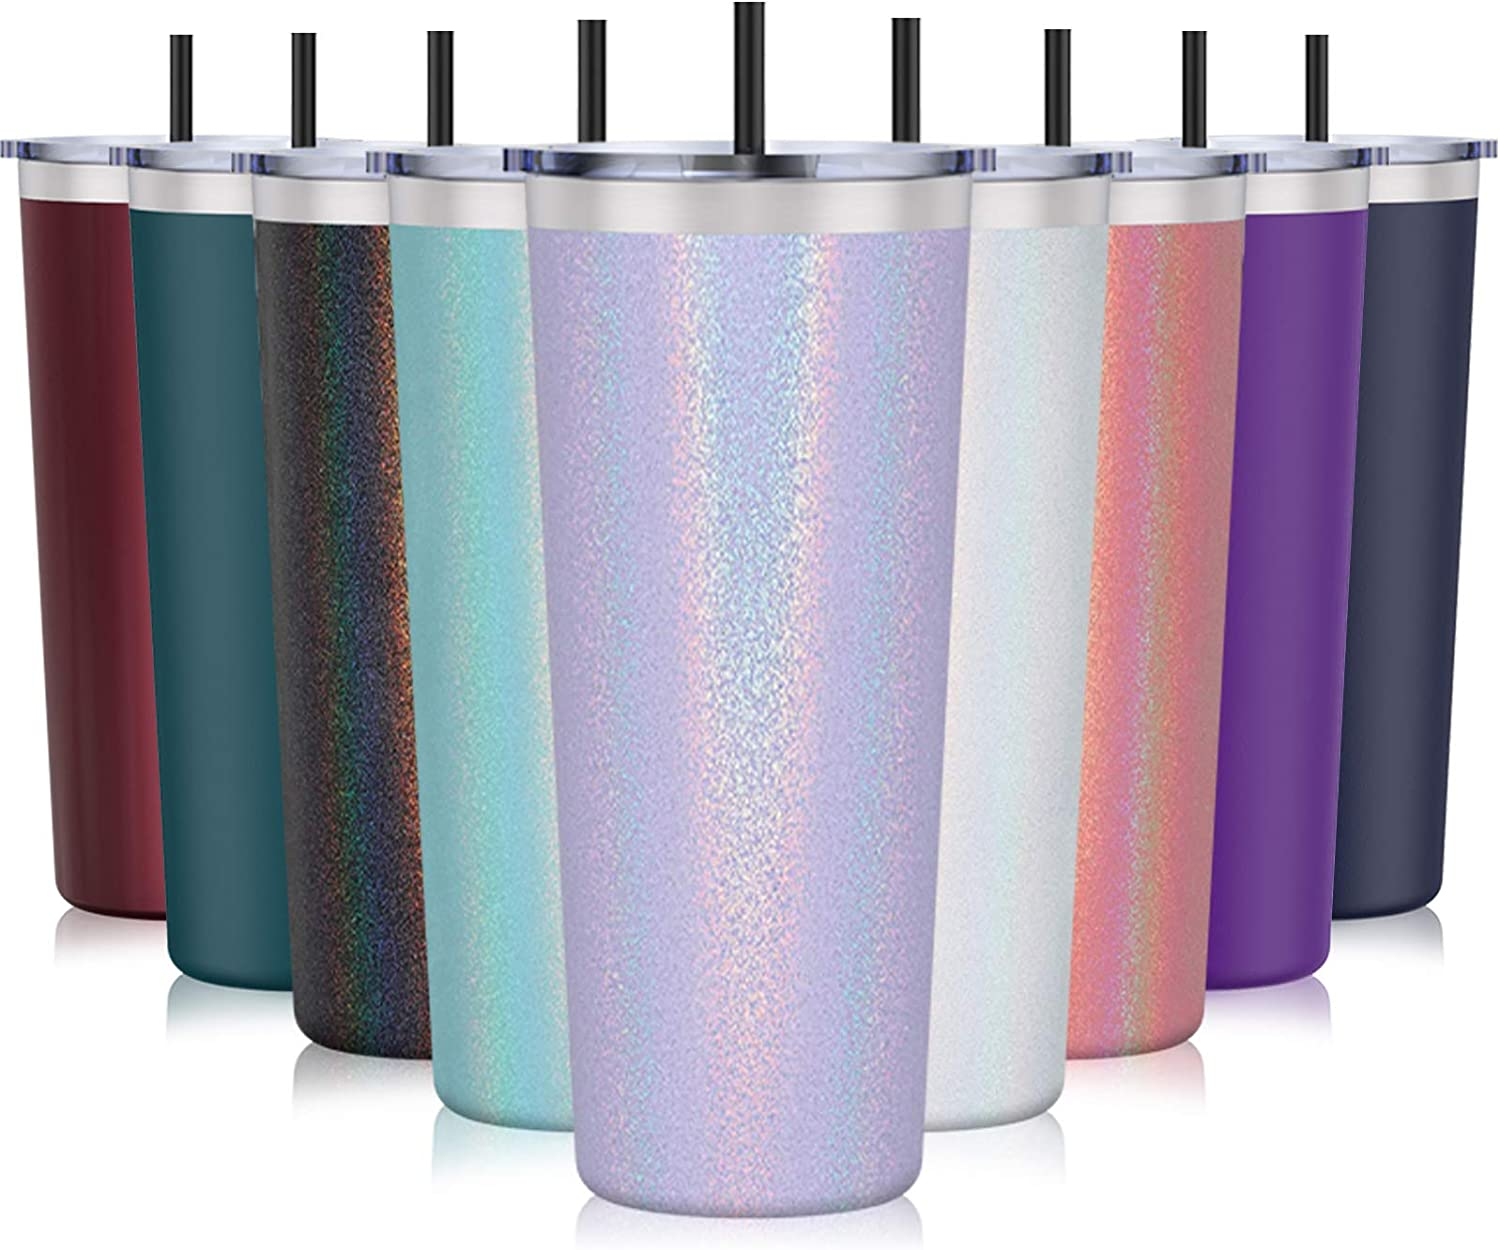 Stainless Steel Tumbler - Aikico 28oz Insulated Travel Tumbler, Double Wall Travel Mug with Splash Proof Lid, Powder Coated Coffee Tumbler for Home, Office, Travel, Party(Rainbow Lavender Purple)